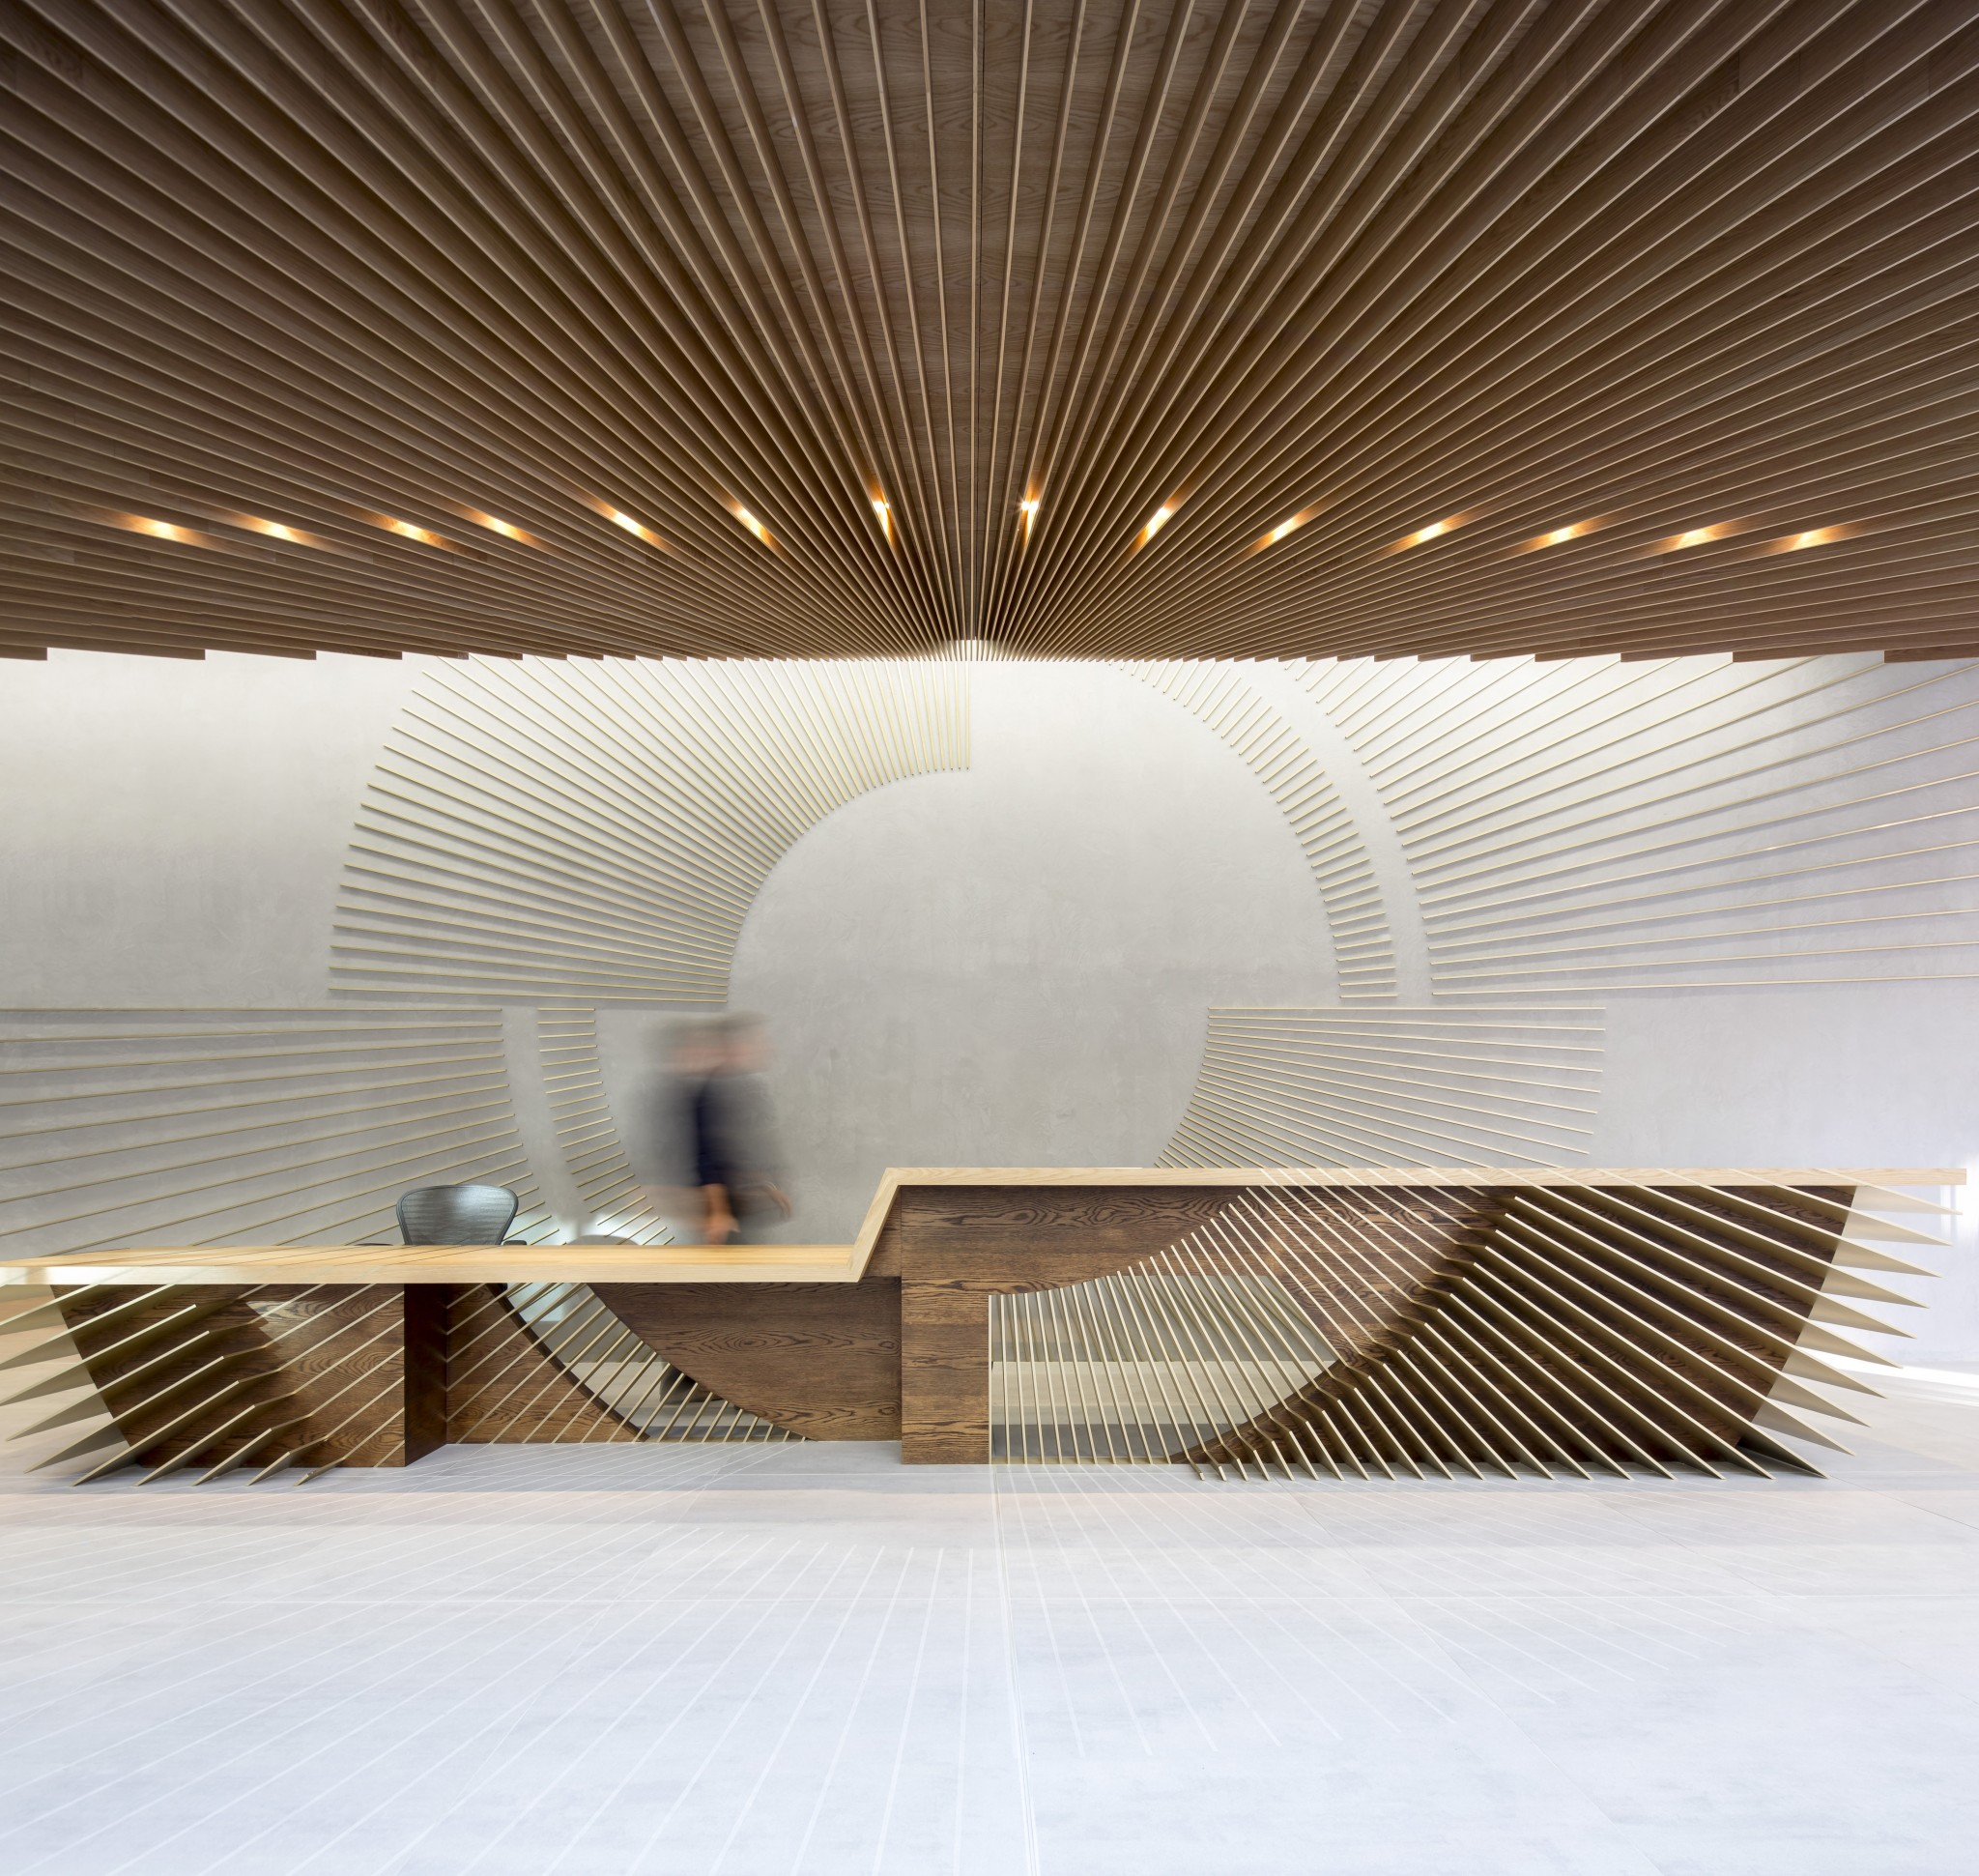 Reception desk in the Ampersand Building by Darling Associates